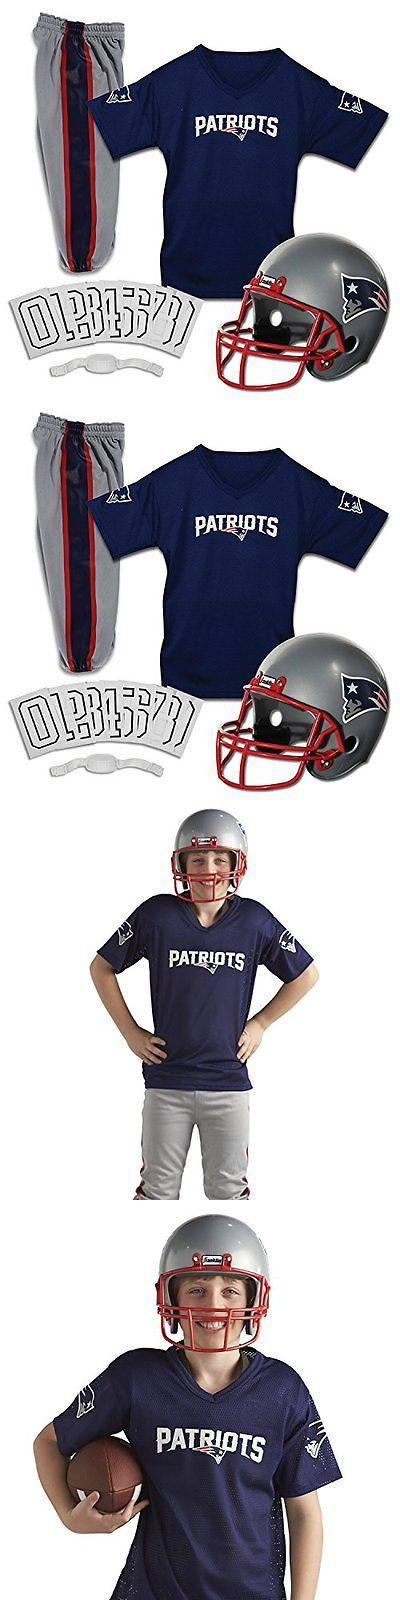 Dress-Up Costumes 19172: Franklin Sports Nfl New England Patriots Deluxe Youth Uniform Set, Medium -> BUY IT NOW ONLY: $33.14 on eBay!